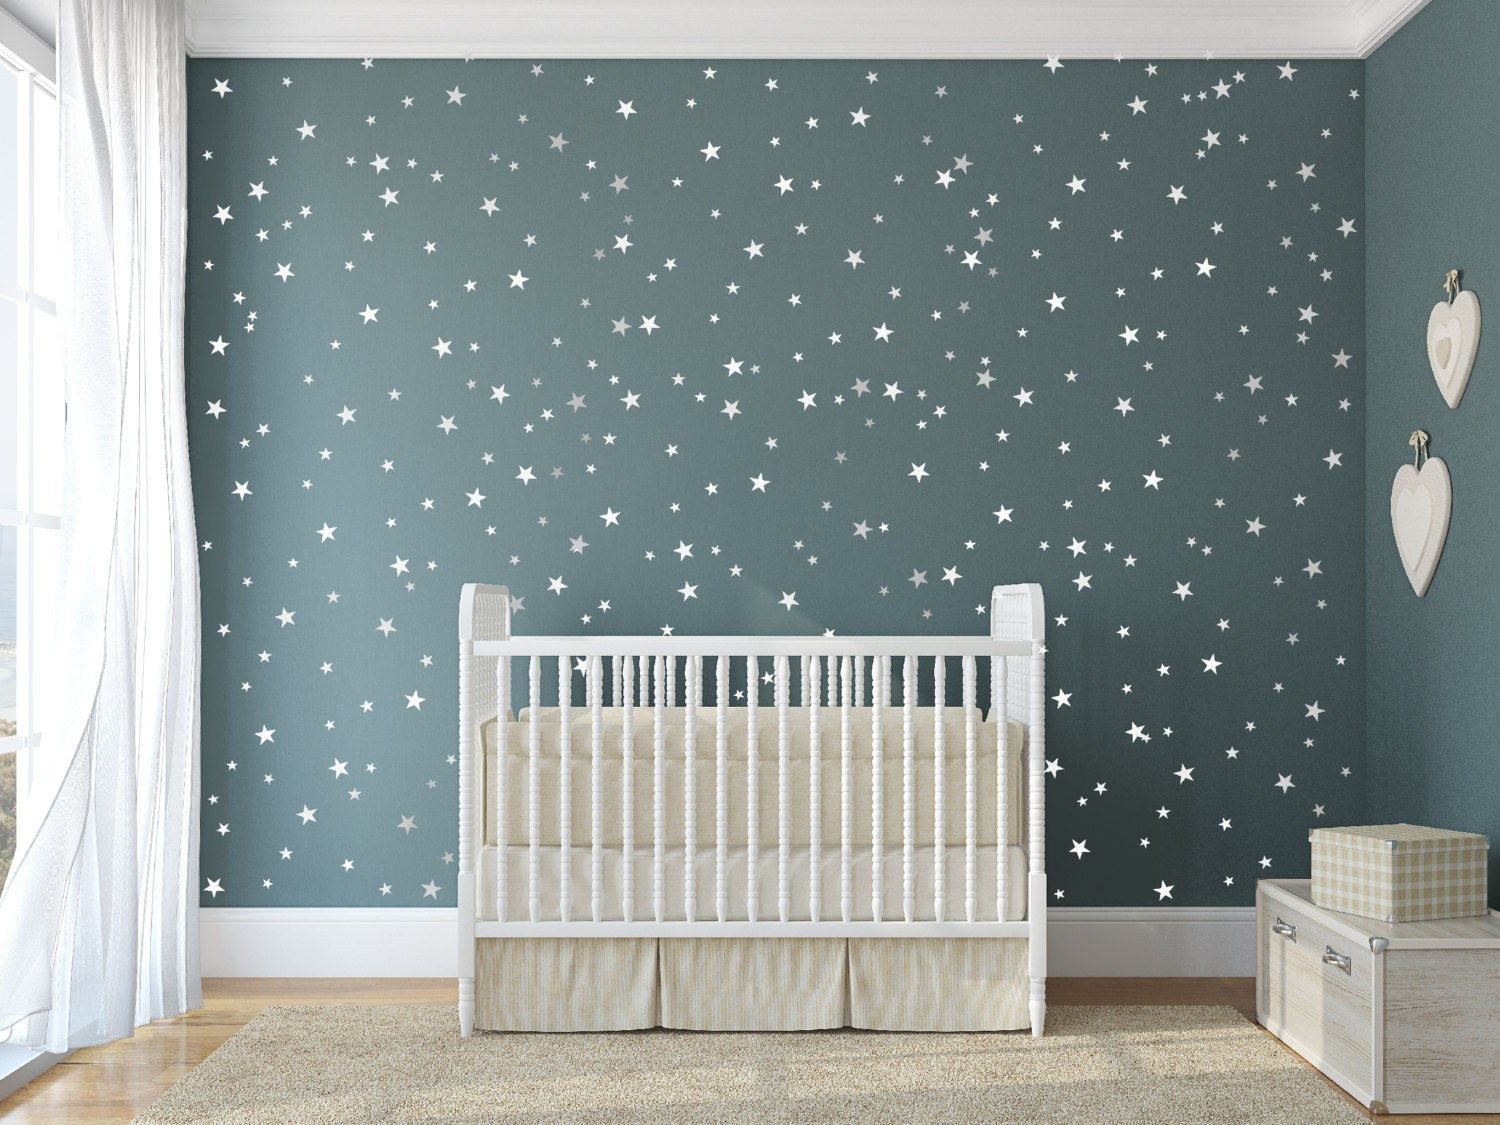 Vinyl star decals 148 silver stars star wall decal art zoom amipublicfo Choice Image